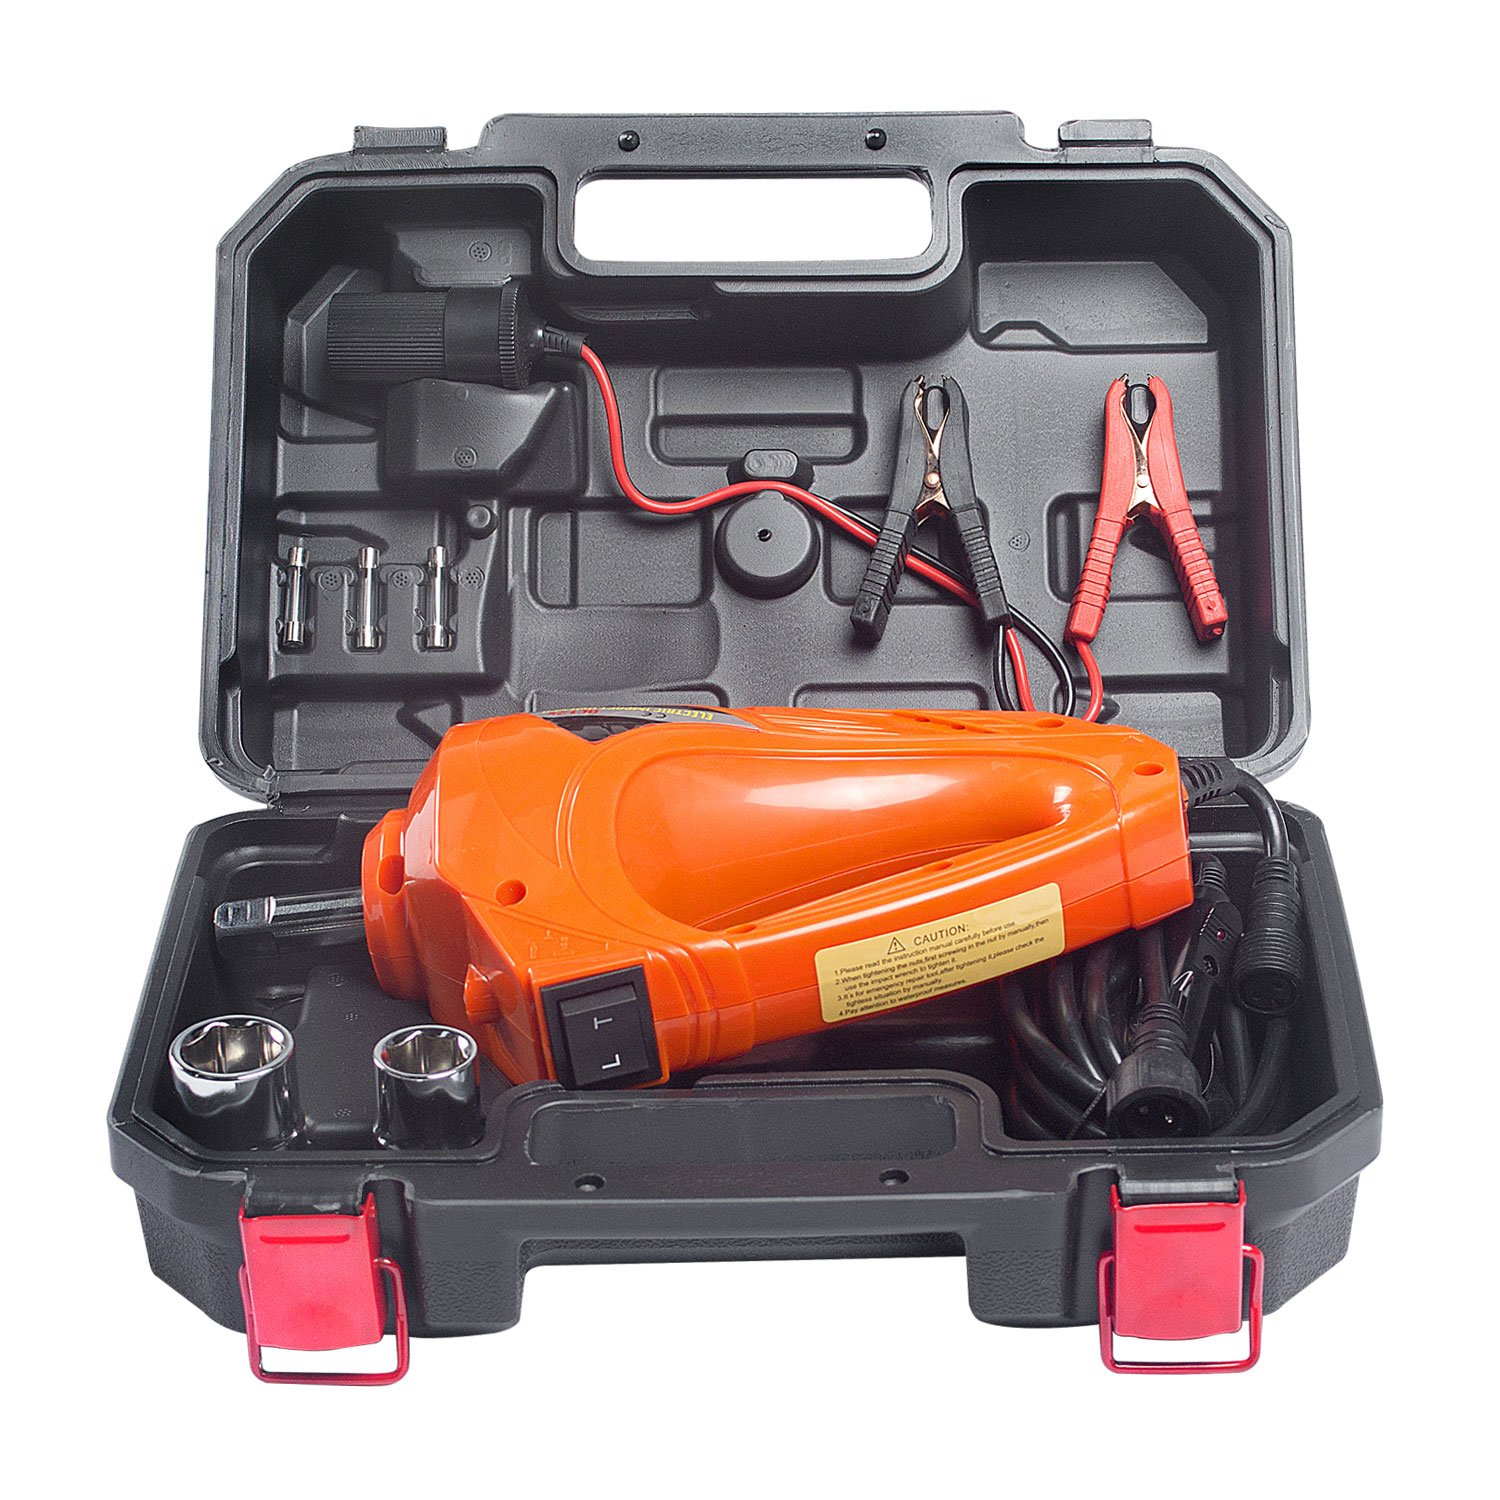 MPLUS 13Amp 480N.M 12V DC Electric Impact Wrench For Tire Replacing B07CJ89GL7  Electric Impact Wrench